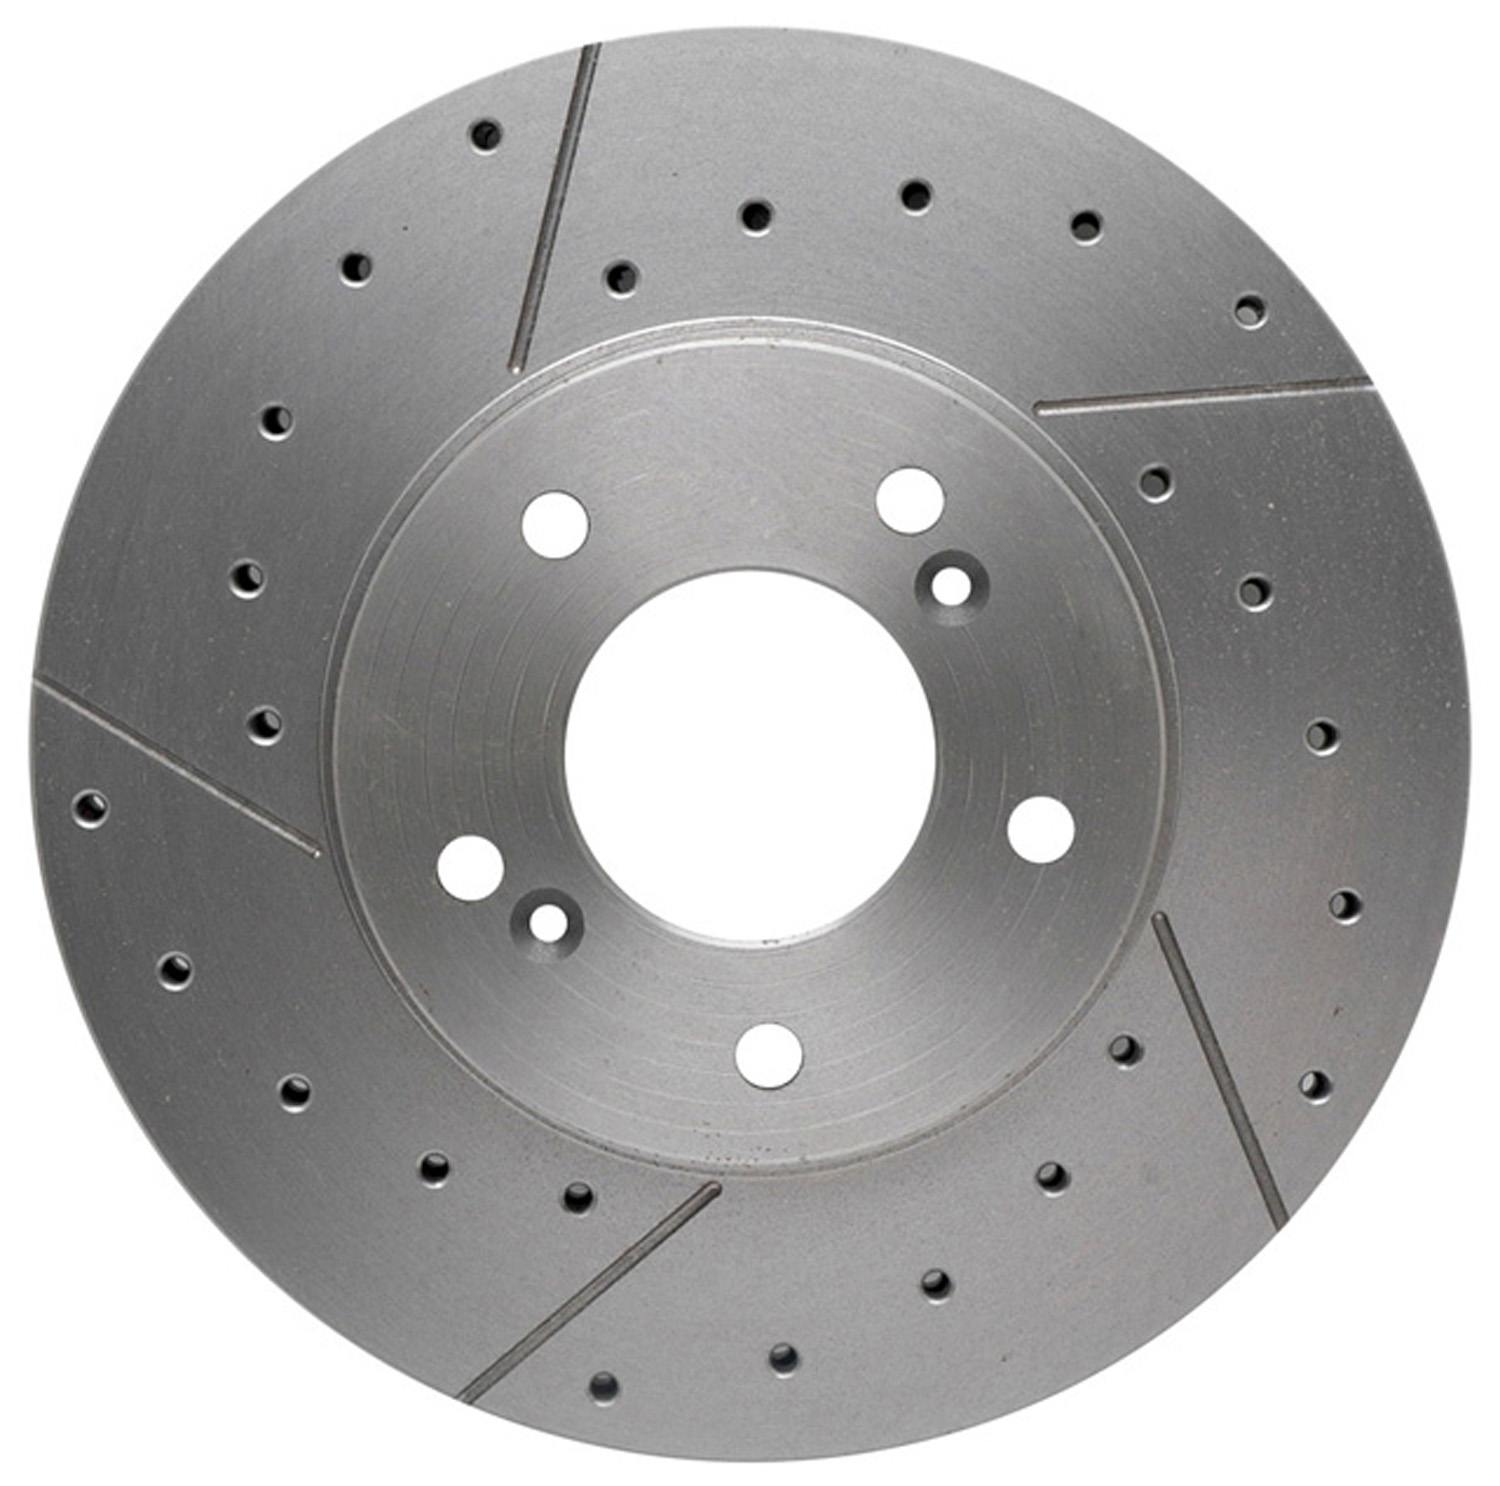 ACDELCO SPECIALTY - Performance Brake Rotor - DCE 18A1746